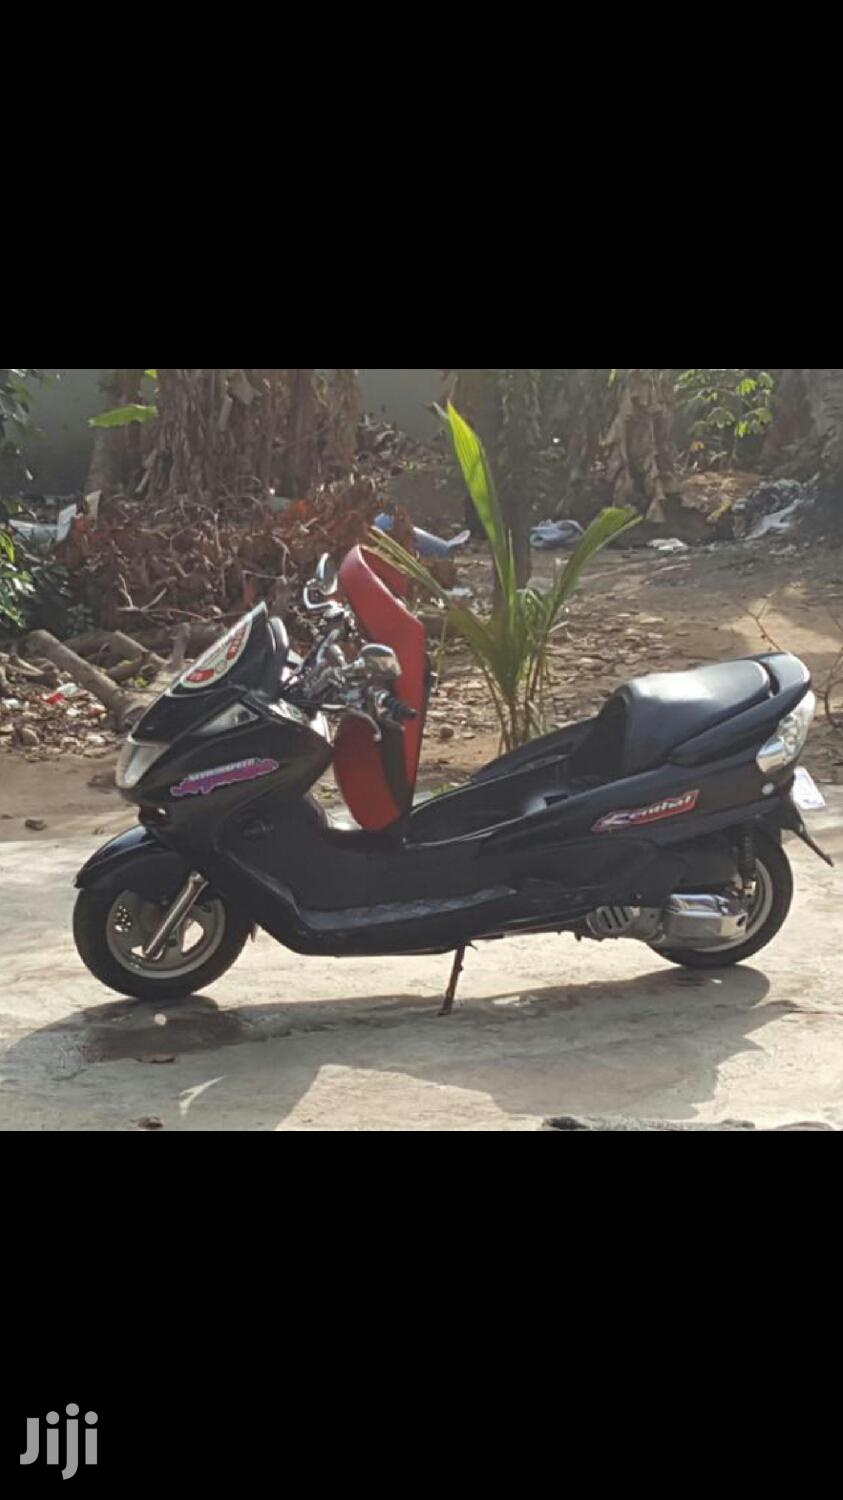 Moto 2017 Black | Motorcycles & Scooters for sale in Achimota, Greater Accra, Ghana